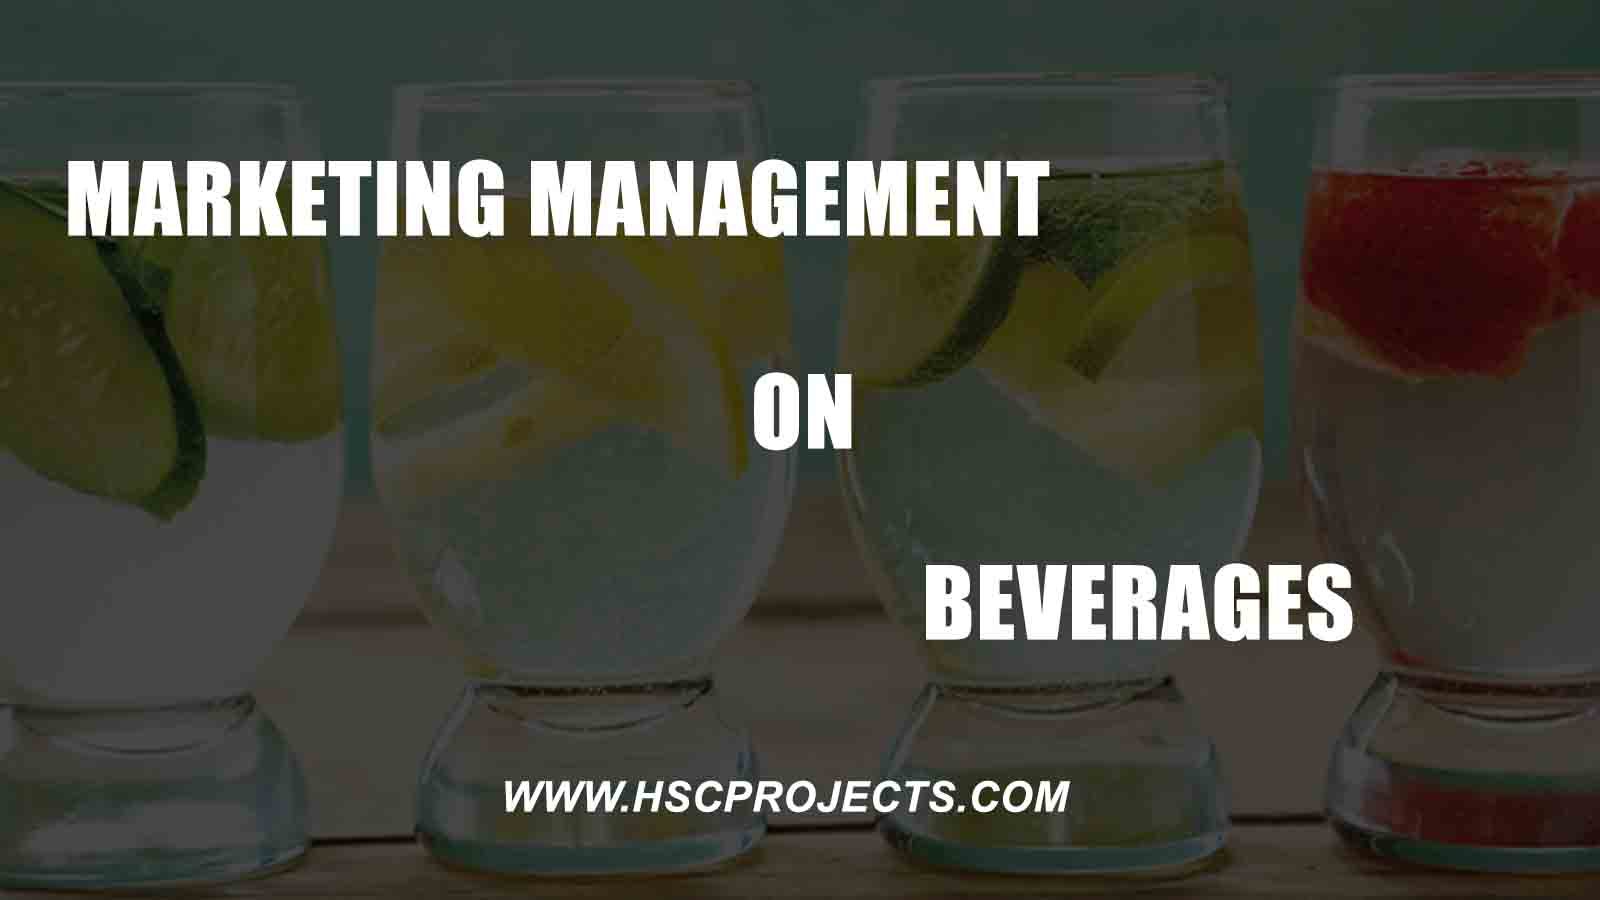 marketing Management of Beverages, Marketing Management of Beverages – Business Studies Project, HSC Projects, HSC Projects